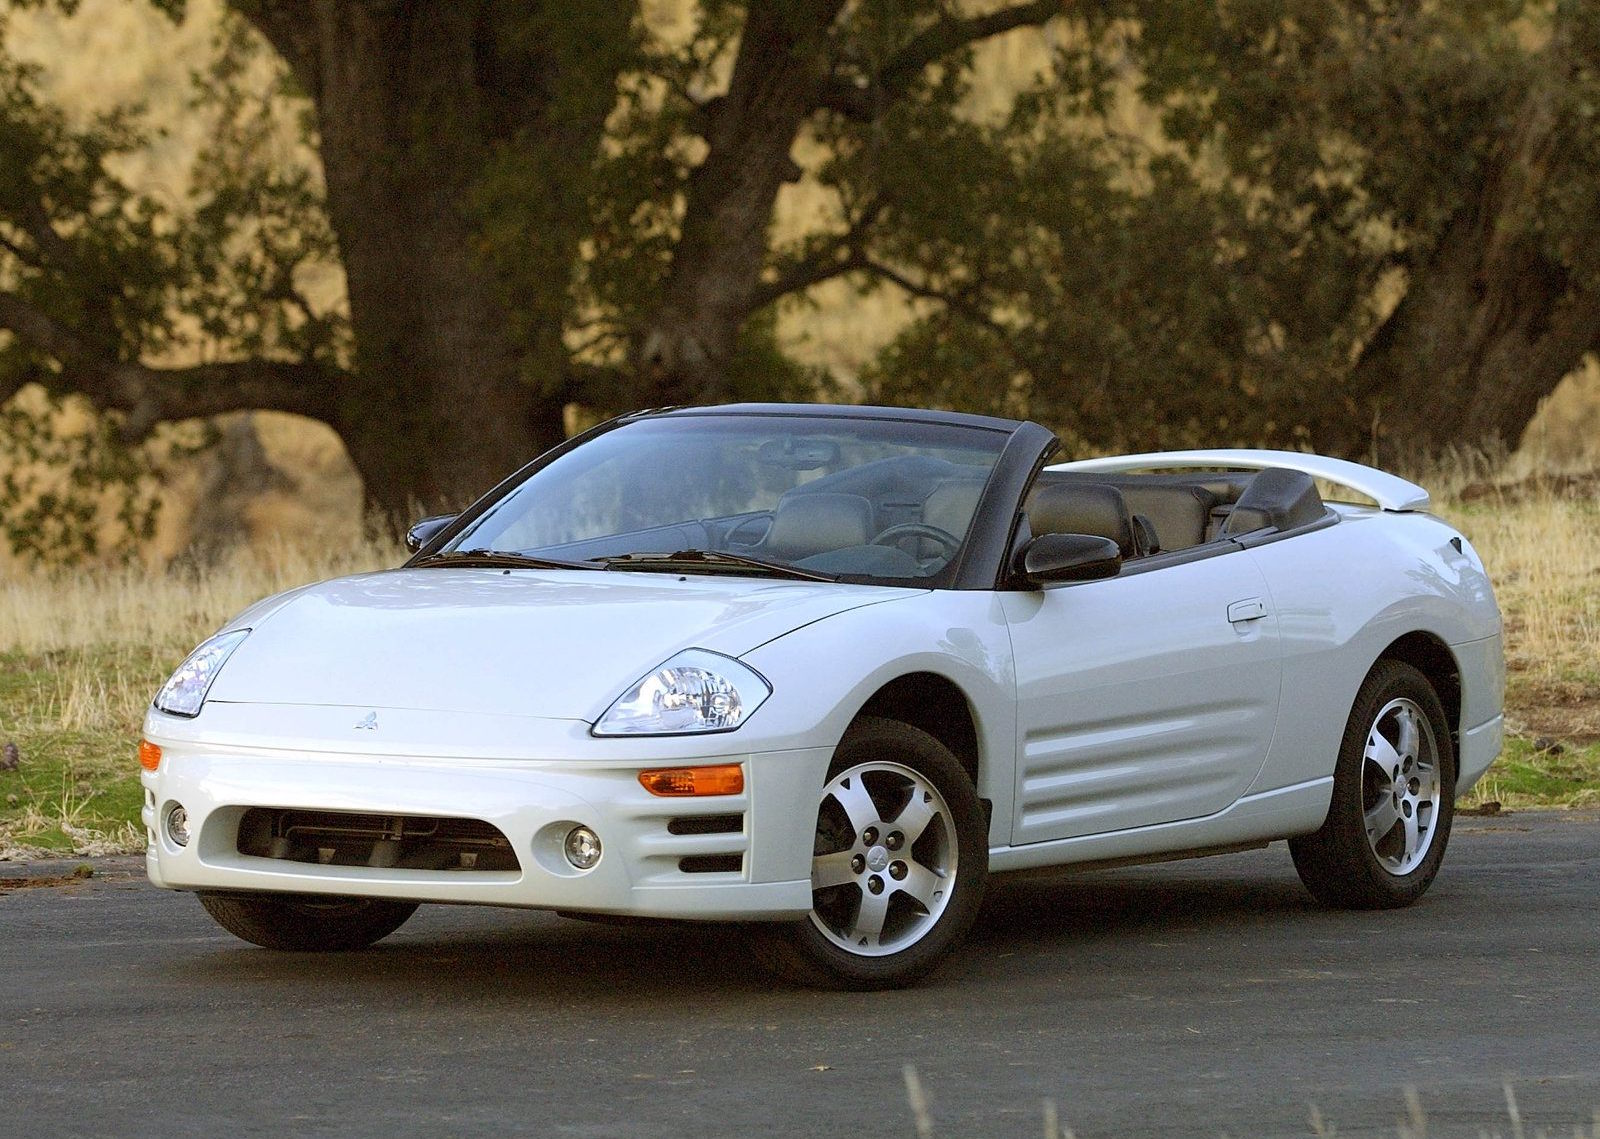 ... Mitsubishi Eclipse Spyder Convertible 2 Doors 2000 Model  ...